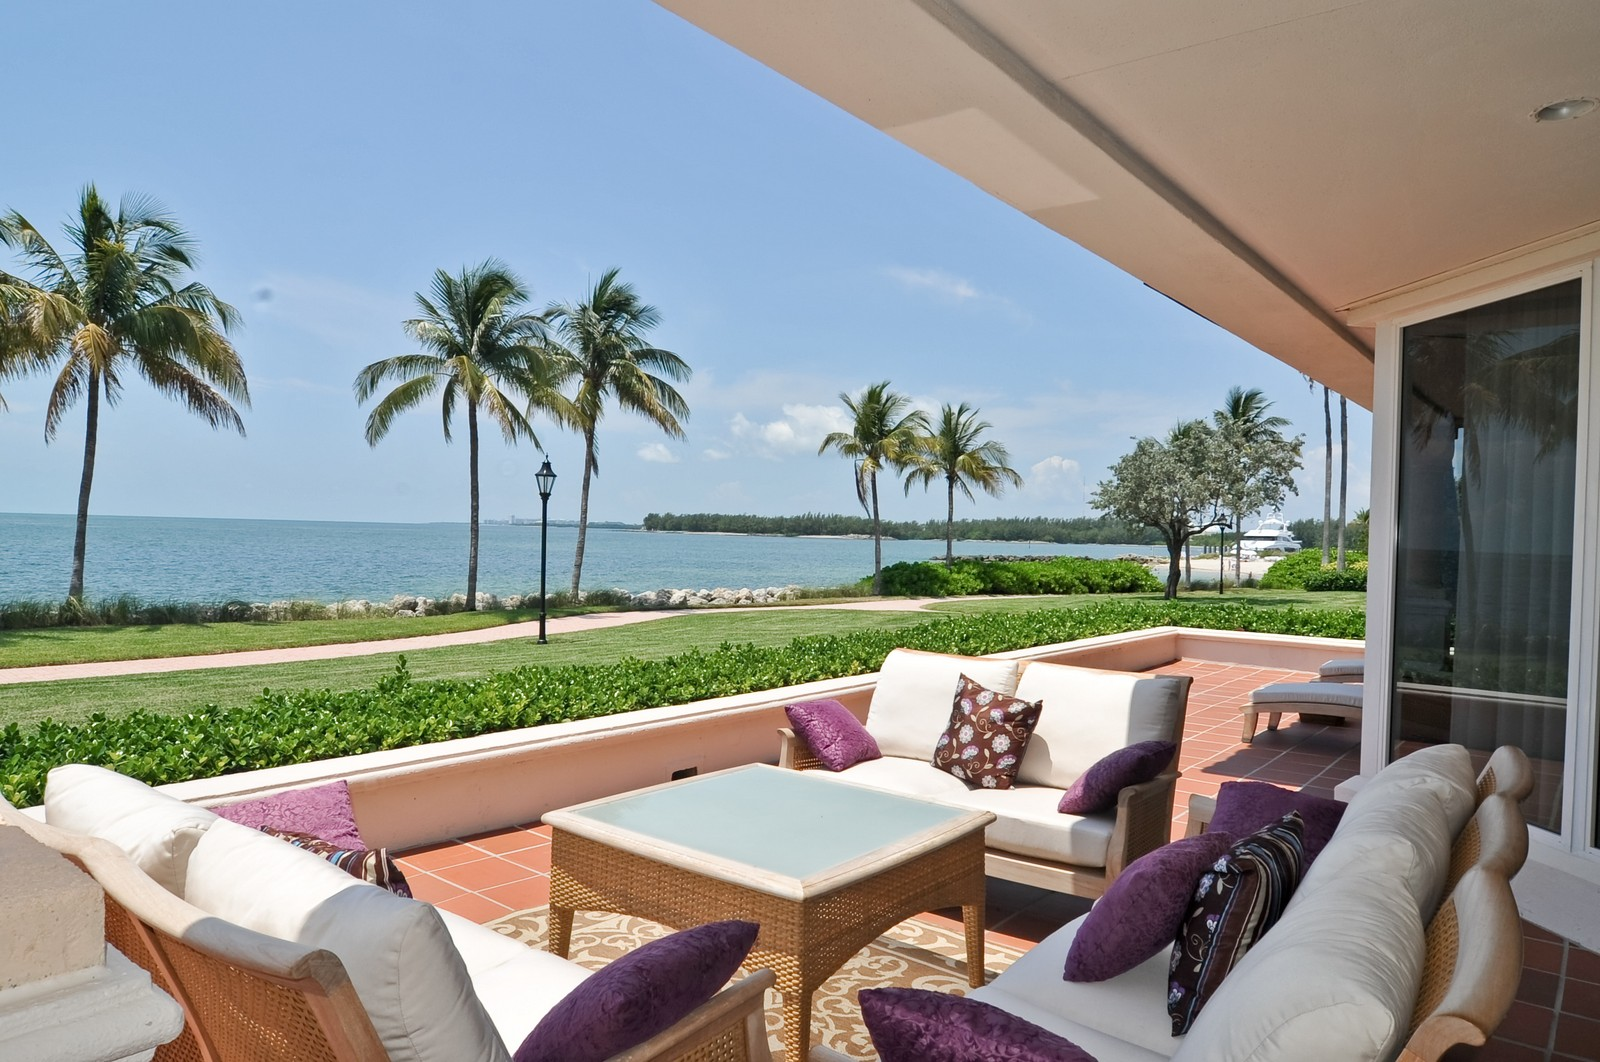 Real Estate Photography - 15312 Fisher Island Dr, Fisher Island, FL, 33109 - Terrace